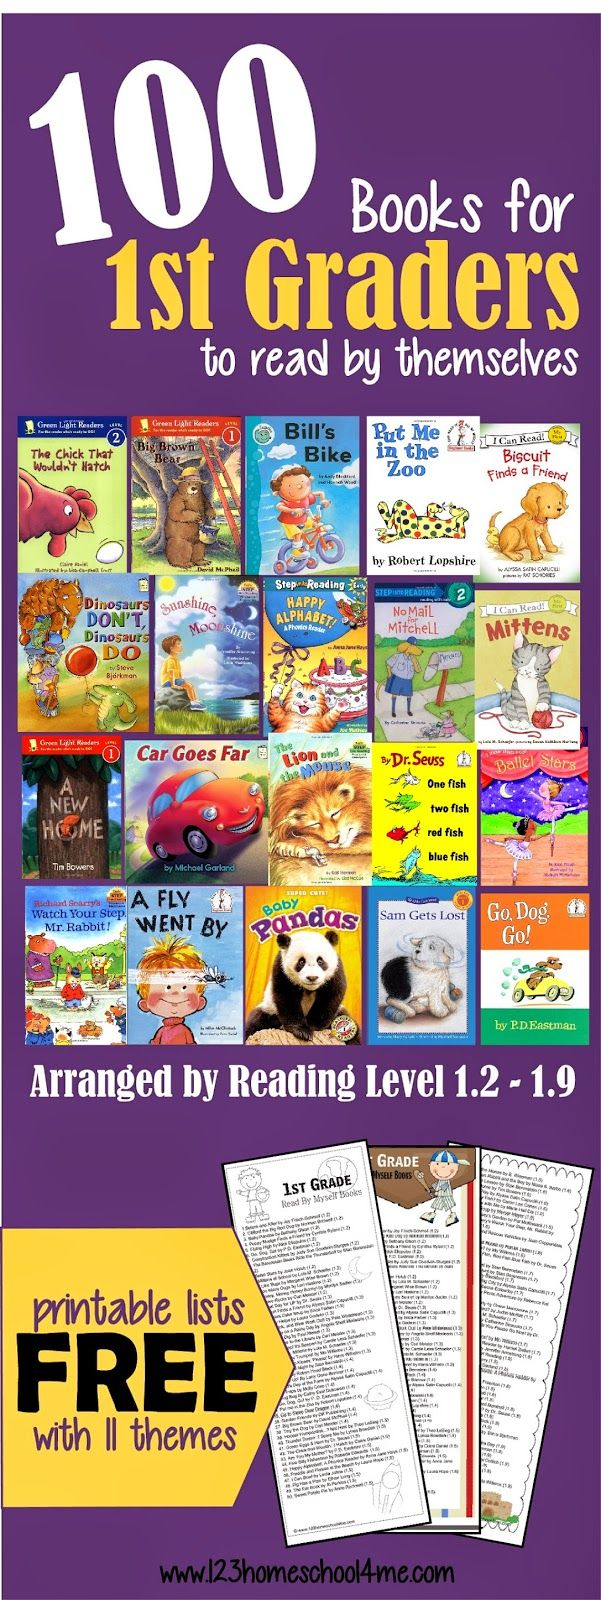 323 best books for kids images on pinterest speech therapy baby 1st grade book list repinned by sos inc resources pinterestsostherapy fandeluxe Image collections